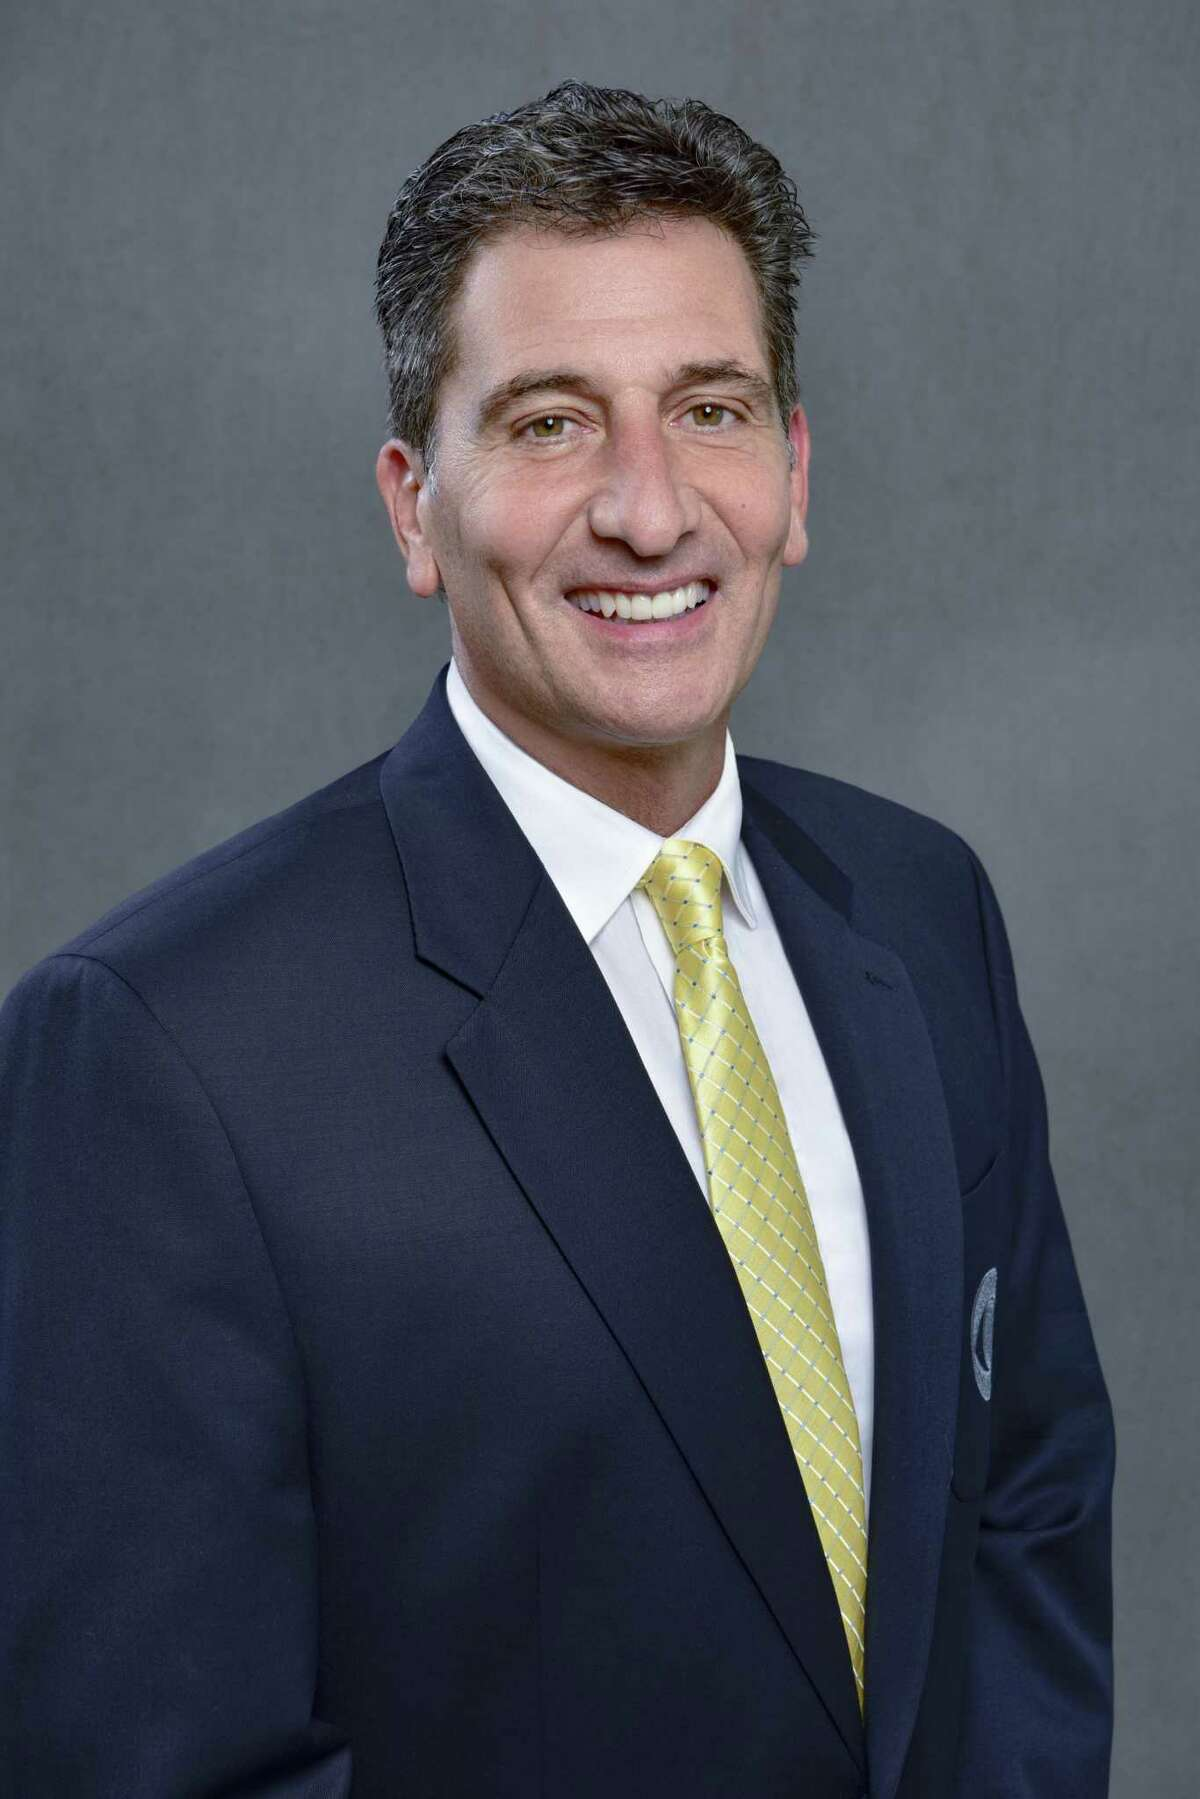 Gene Steratore CBS NFL Rules Analyst. NFL on CBS Photo Cr.: John Paul Filo/CBS CBS Aƒ?A'c.2018 CBS Broadcasting Inc. All Rights Reserve